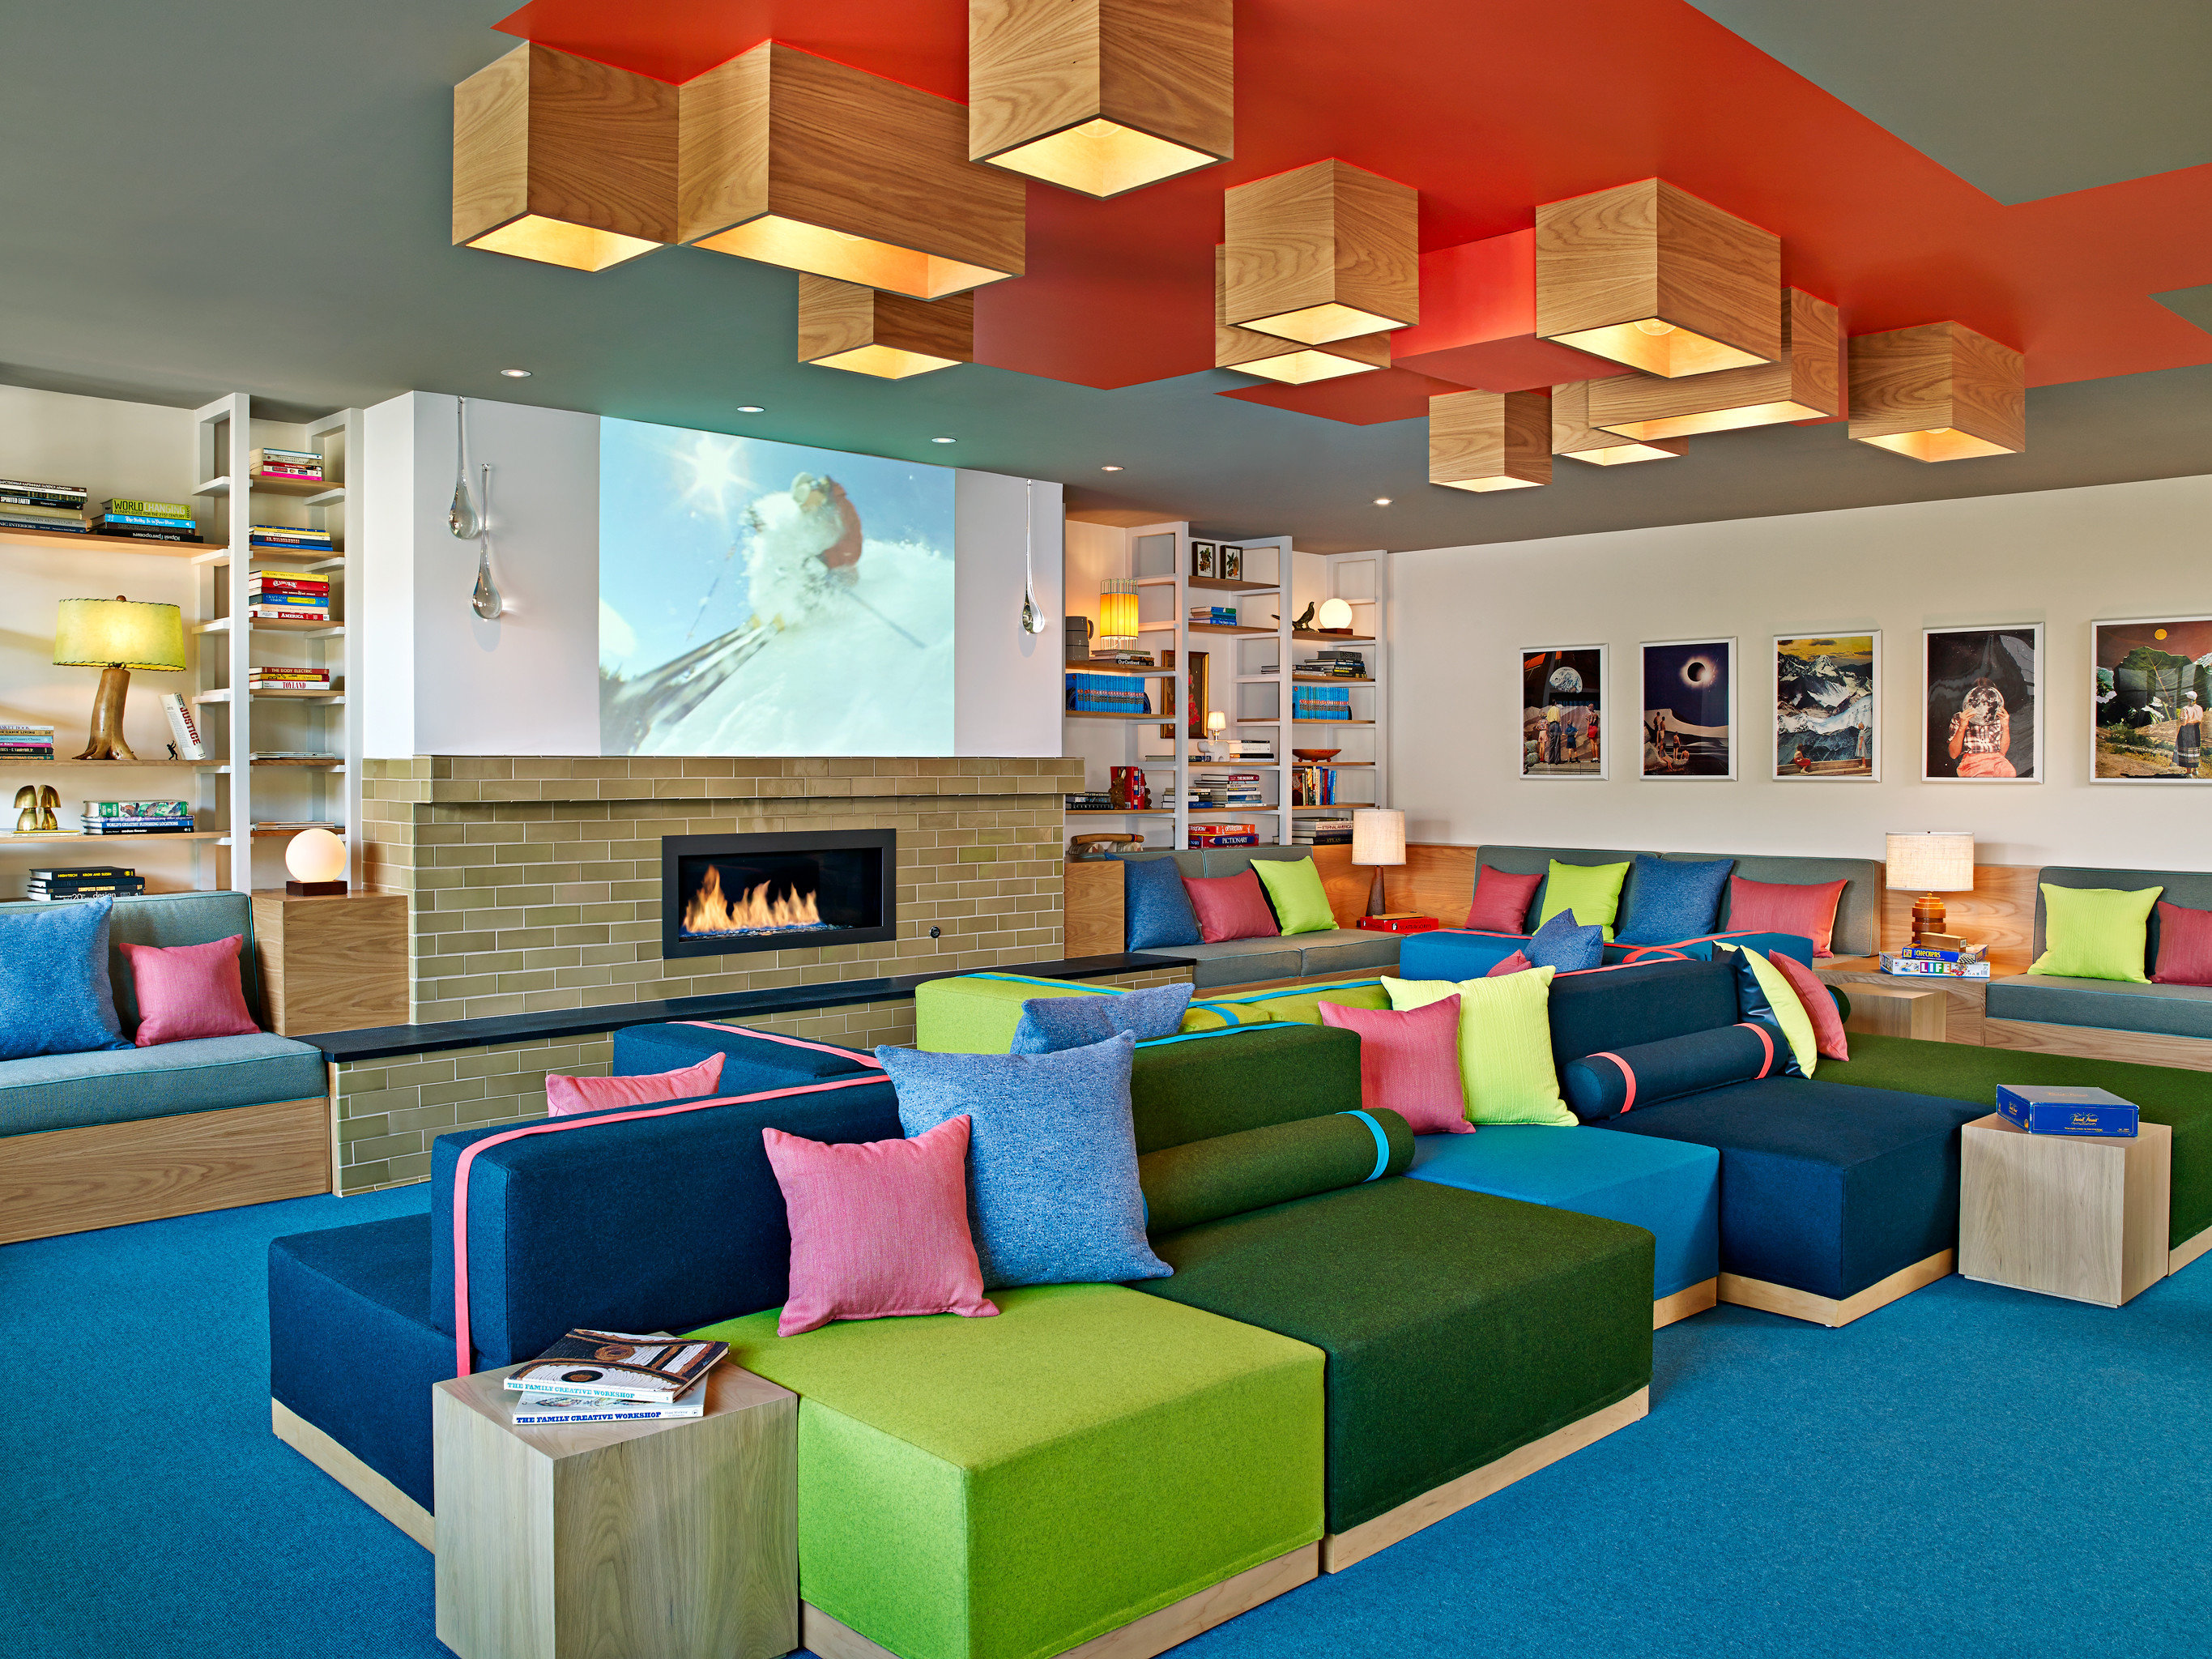 Lodge Lounge Mountains Ski color leisure recreation room living room home colorful colored